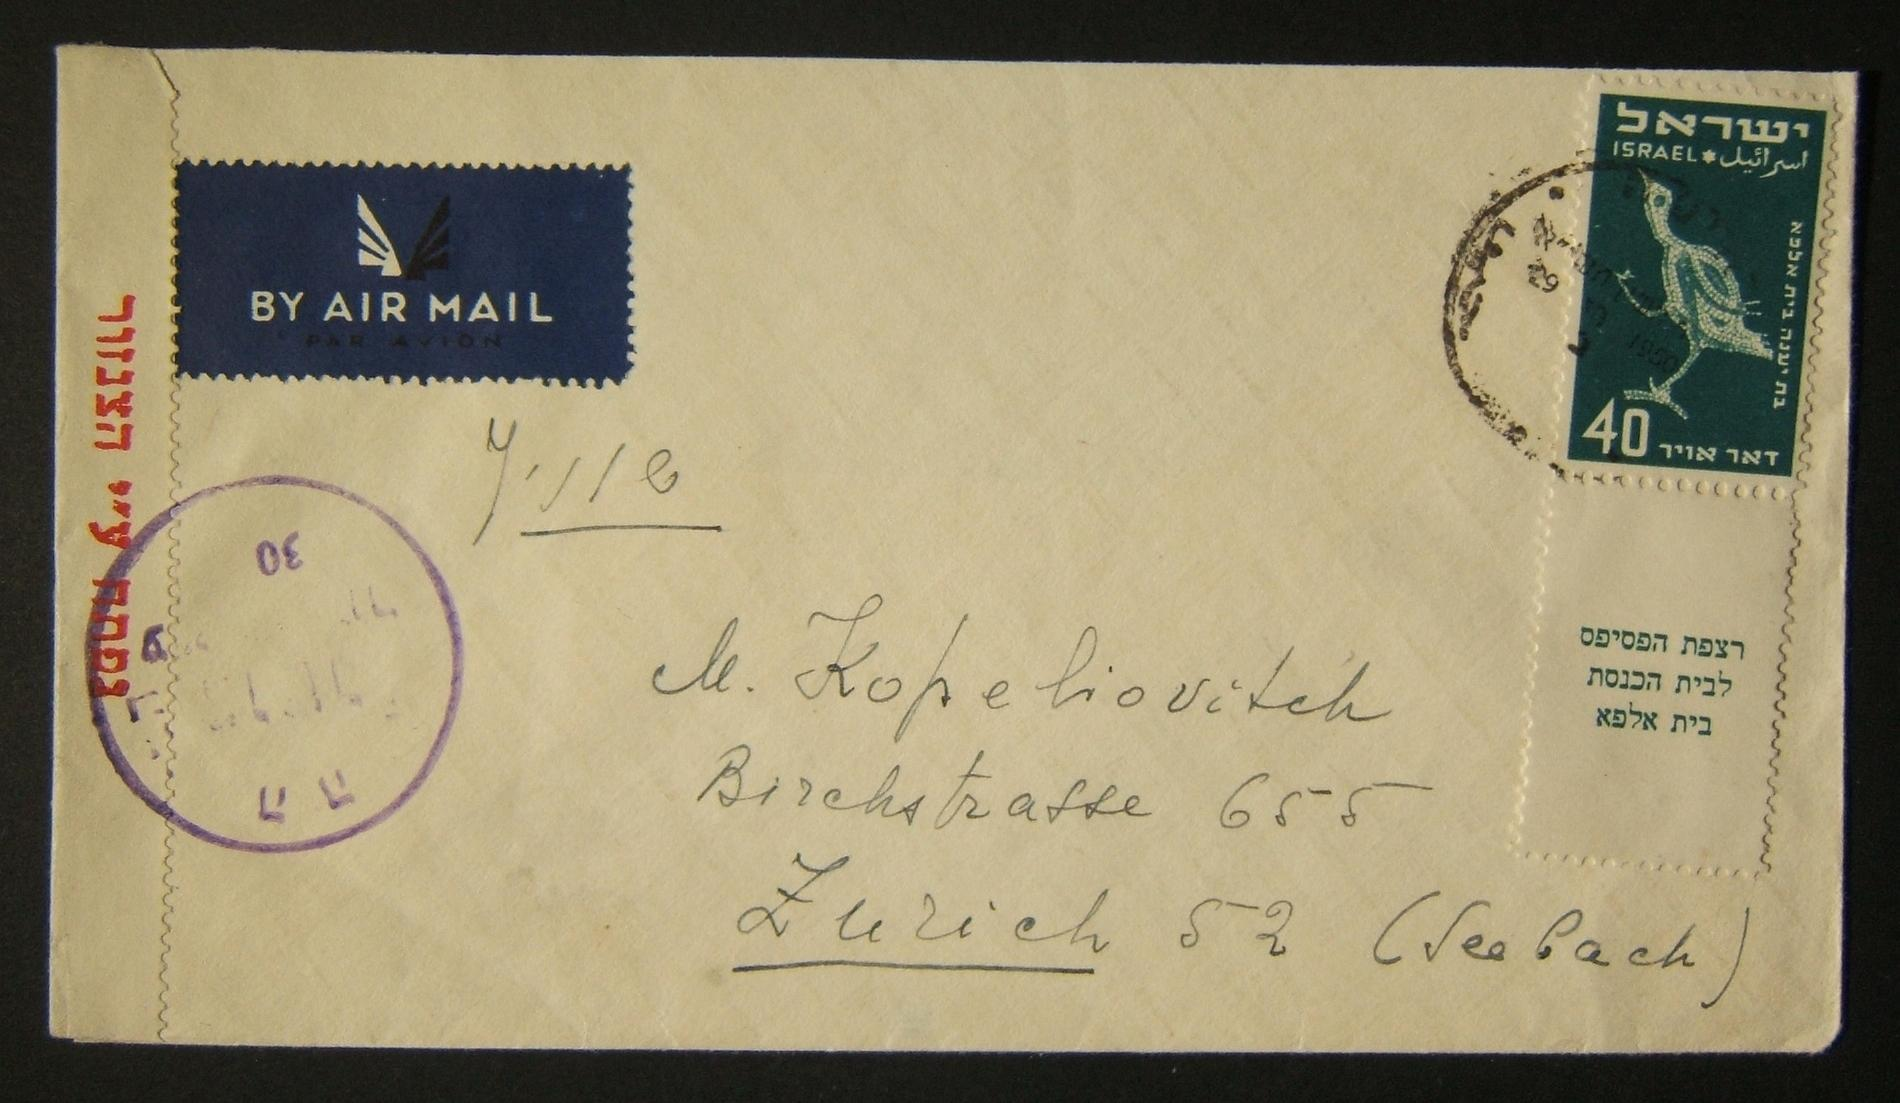 1950 1st airmail / PO's, rates & routes: 29-10-1950 airmail cover ex HAIFA to ZURICH franked 40pr at the FA-2a period rate to Europe using half-tabbed 40pr (Ba34) tied by single st